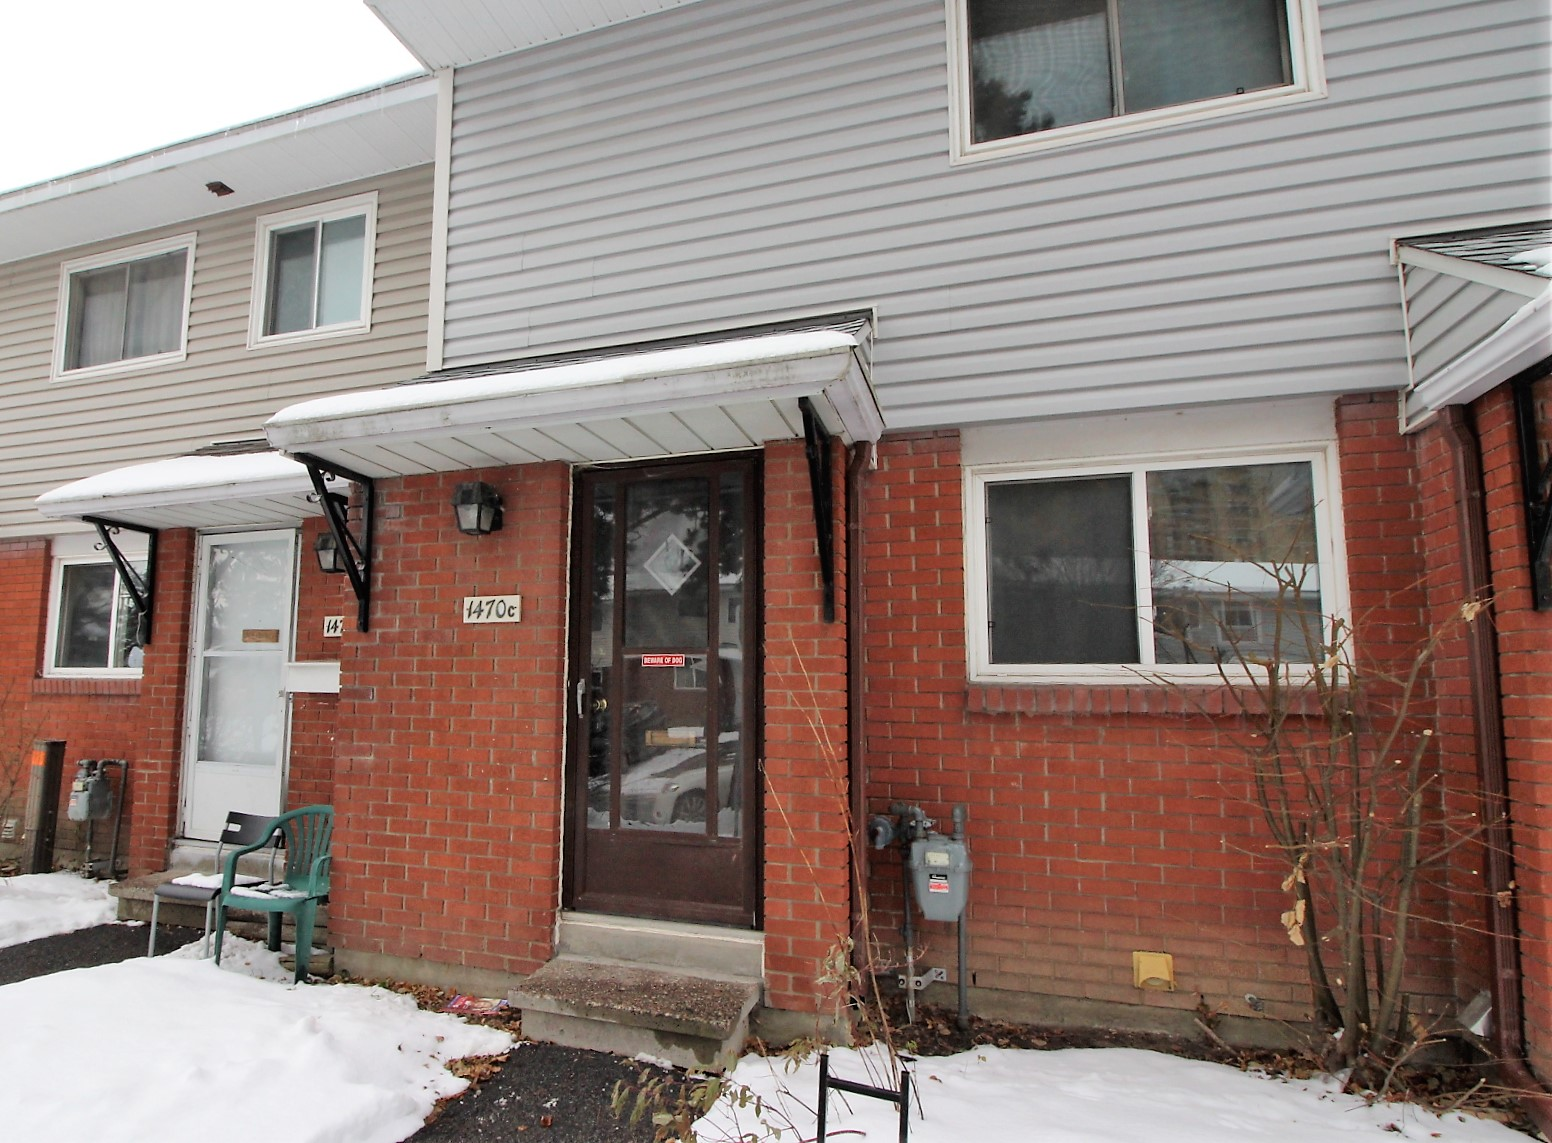 1470C Heatherington Rd - Perfect Home for 1st Time Buyers or Investors in Heron Gate area!